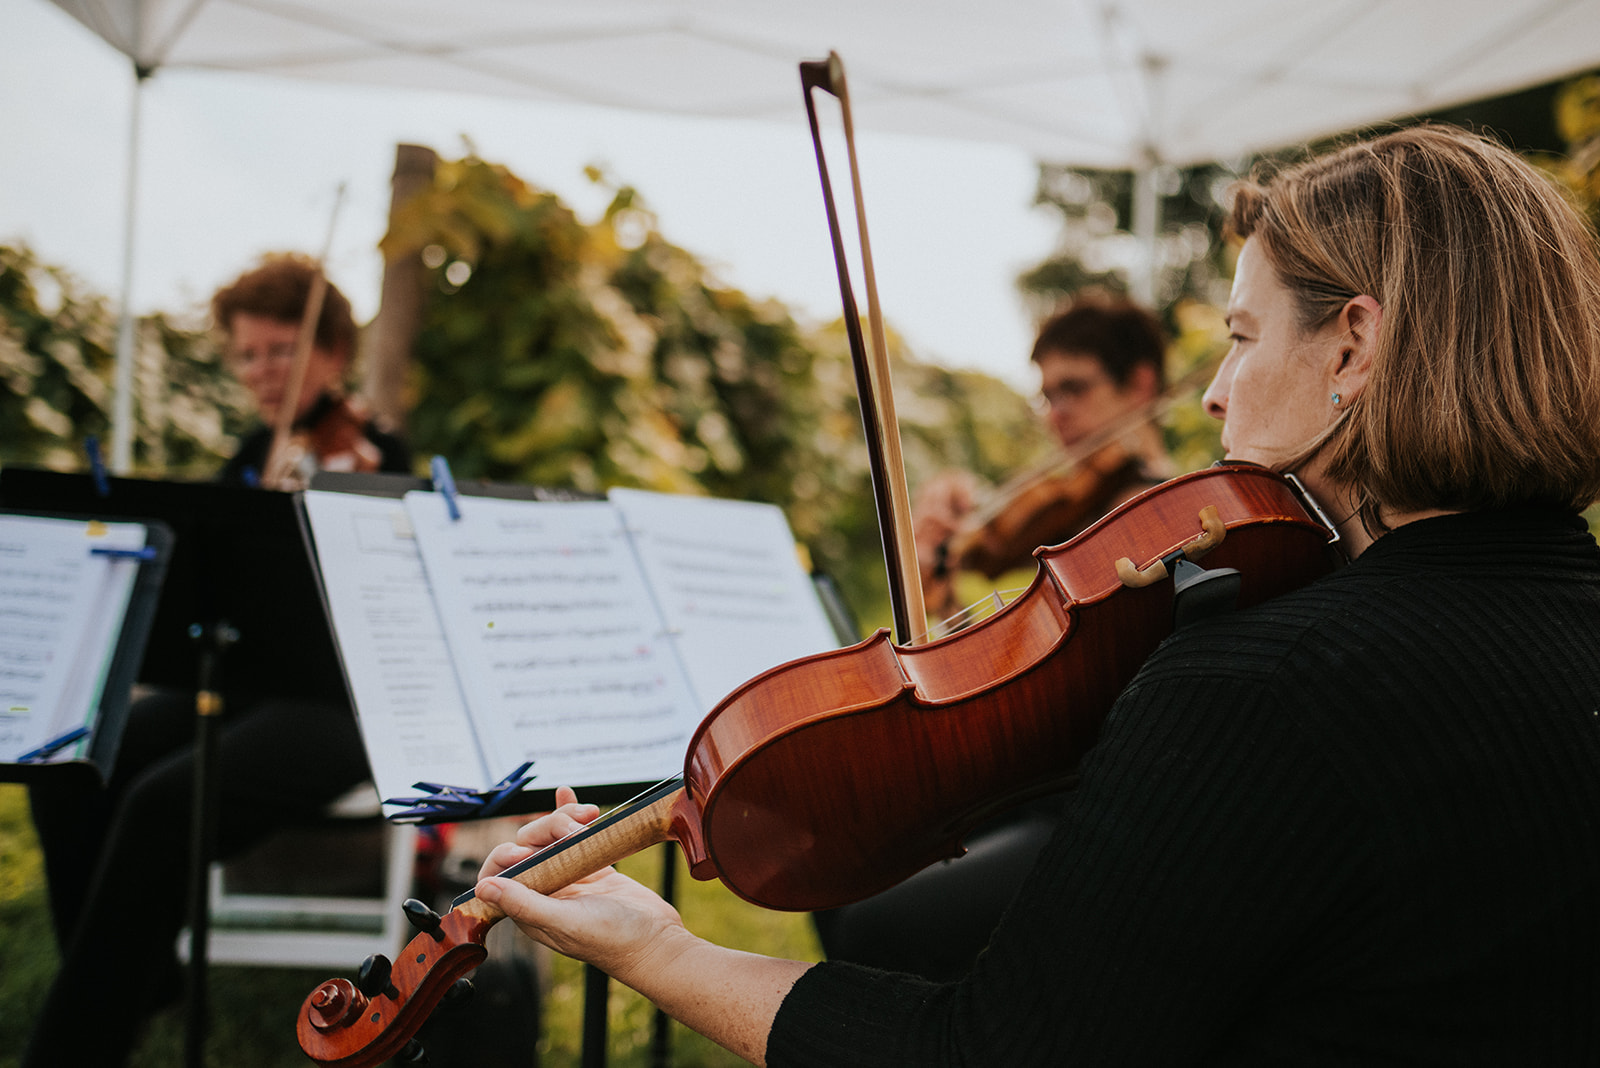 overthevineswisconsinwedding_0497.jpg